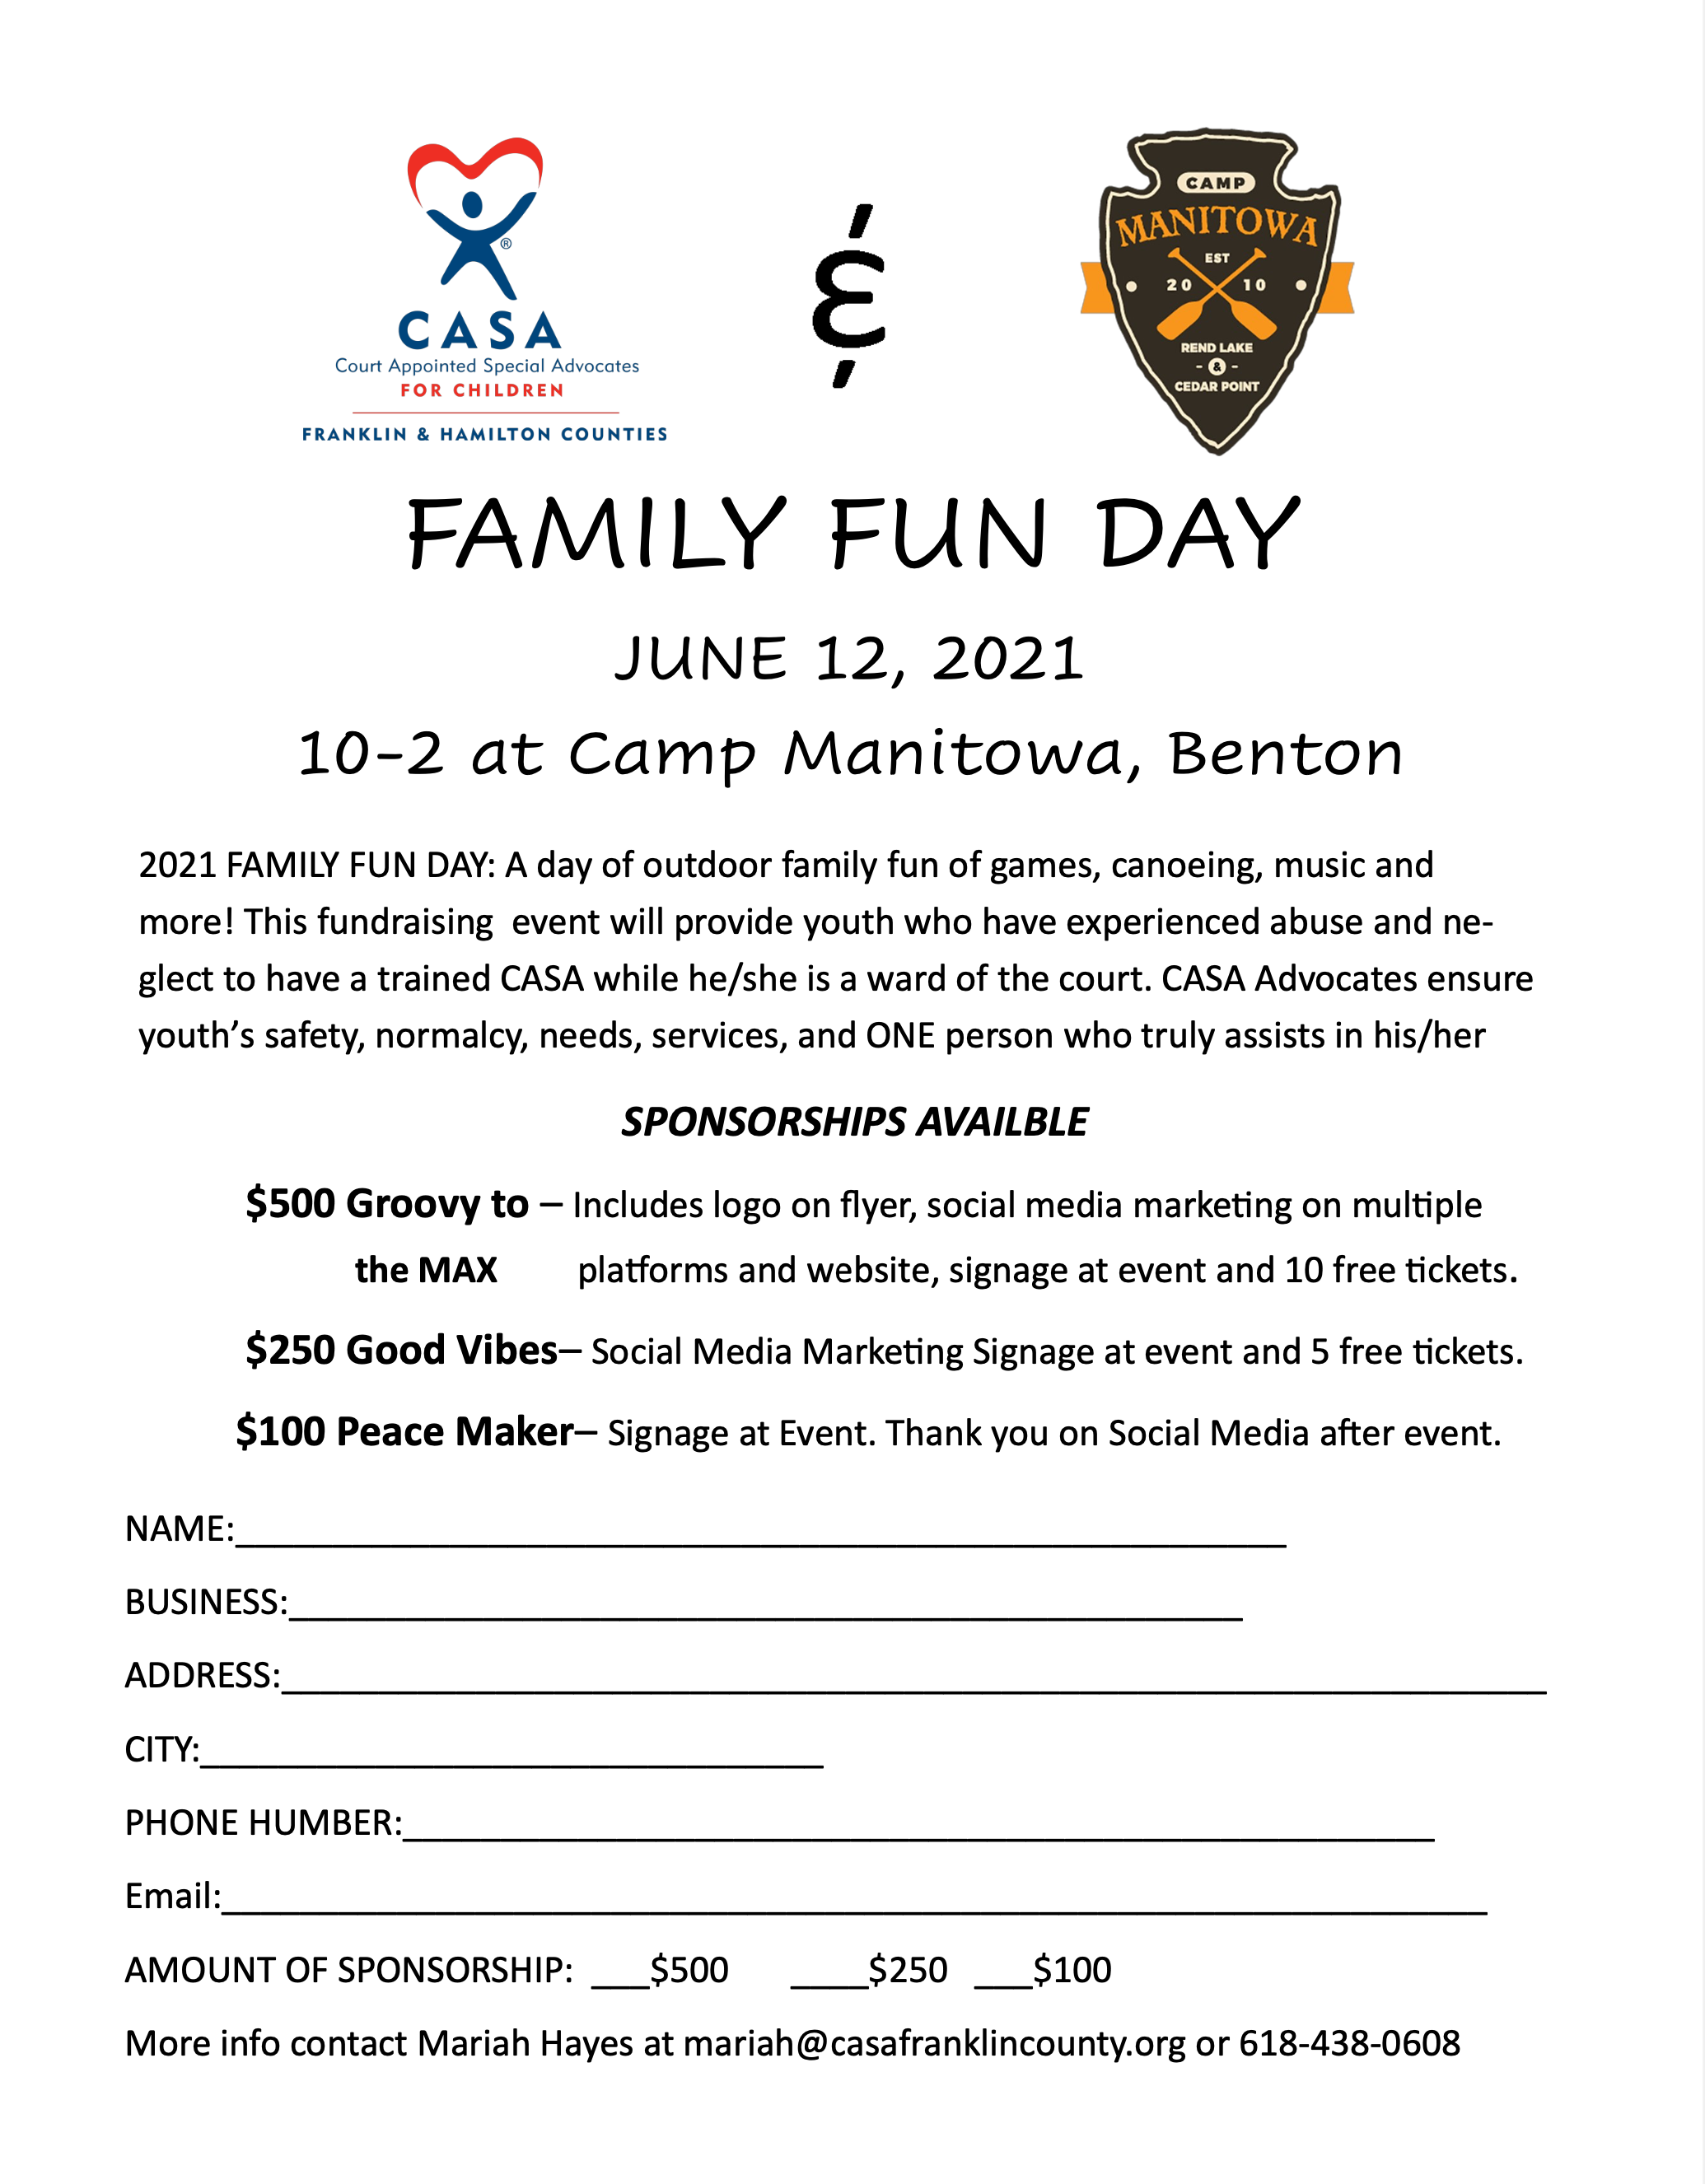 Become a Sponsorship for Family Fun Day